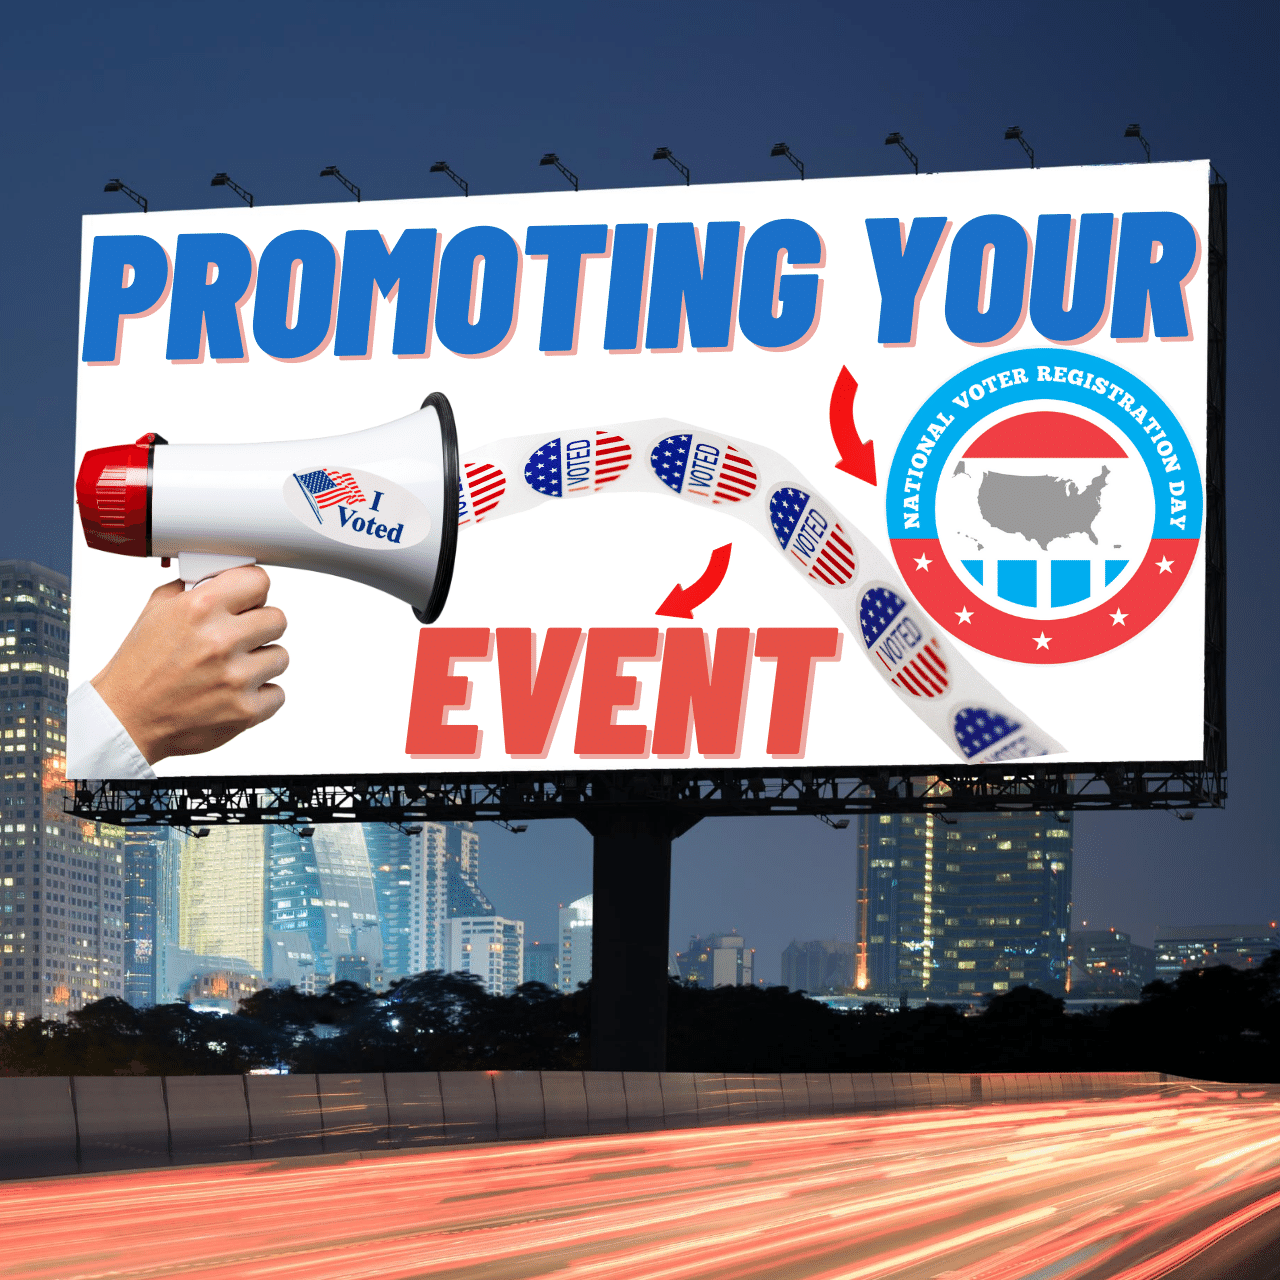 Promoting Your Event